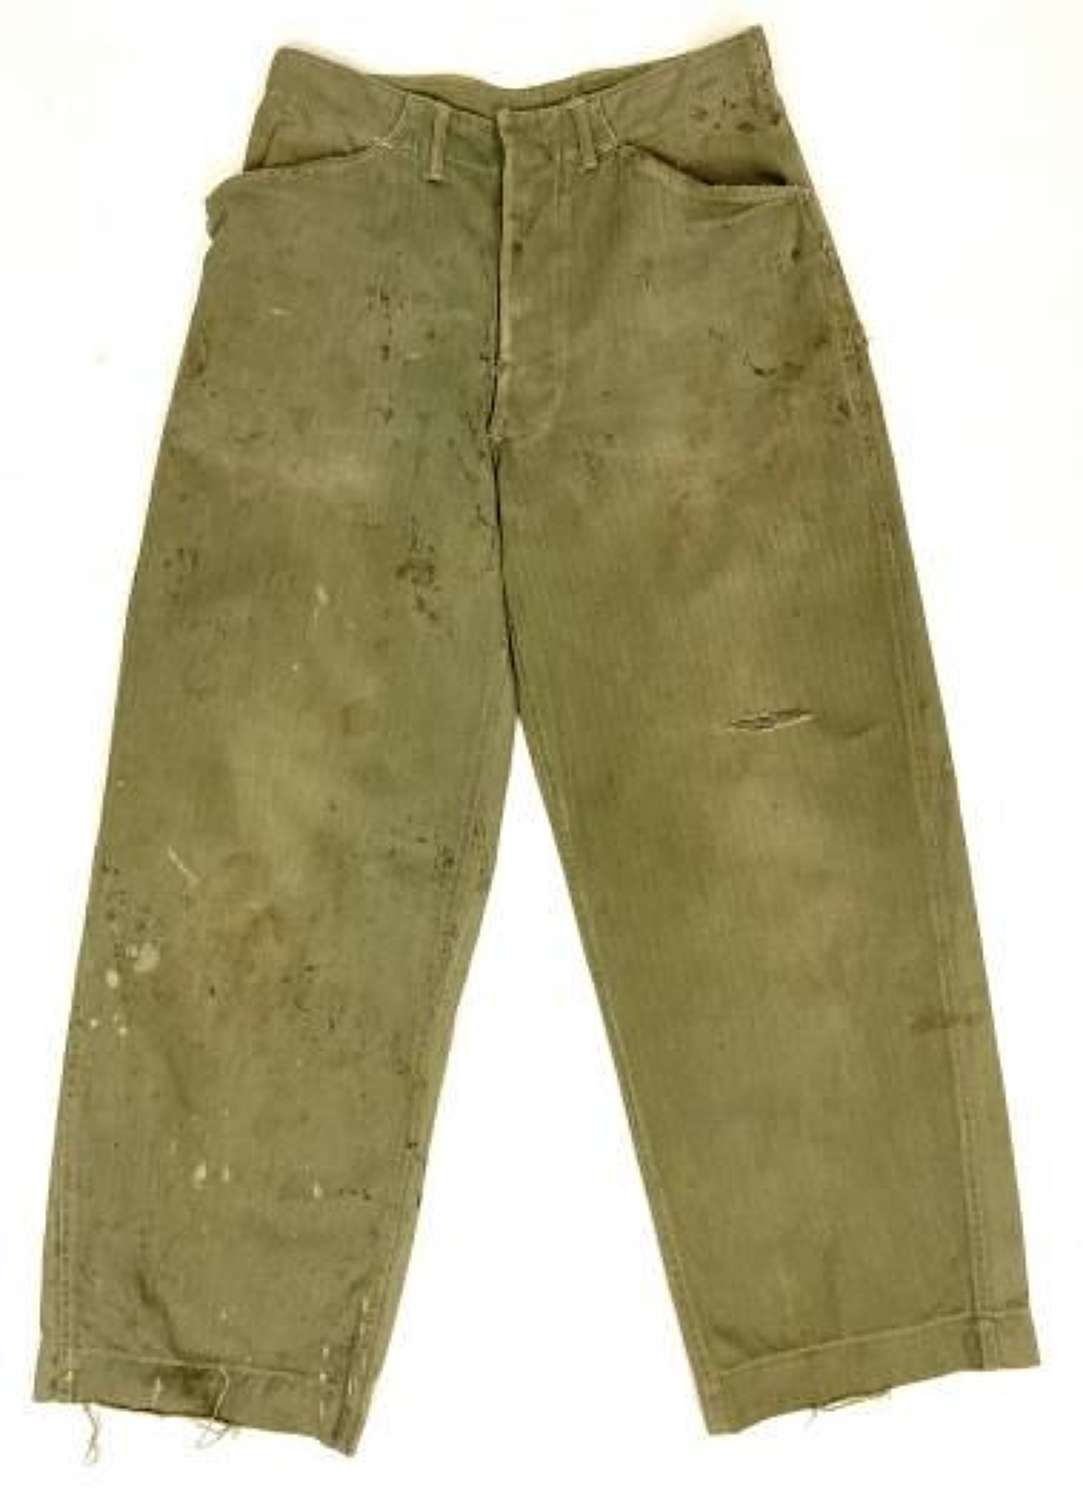 Original WW2 USMC P1941 HBT Trousers